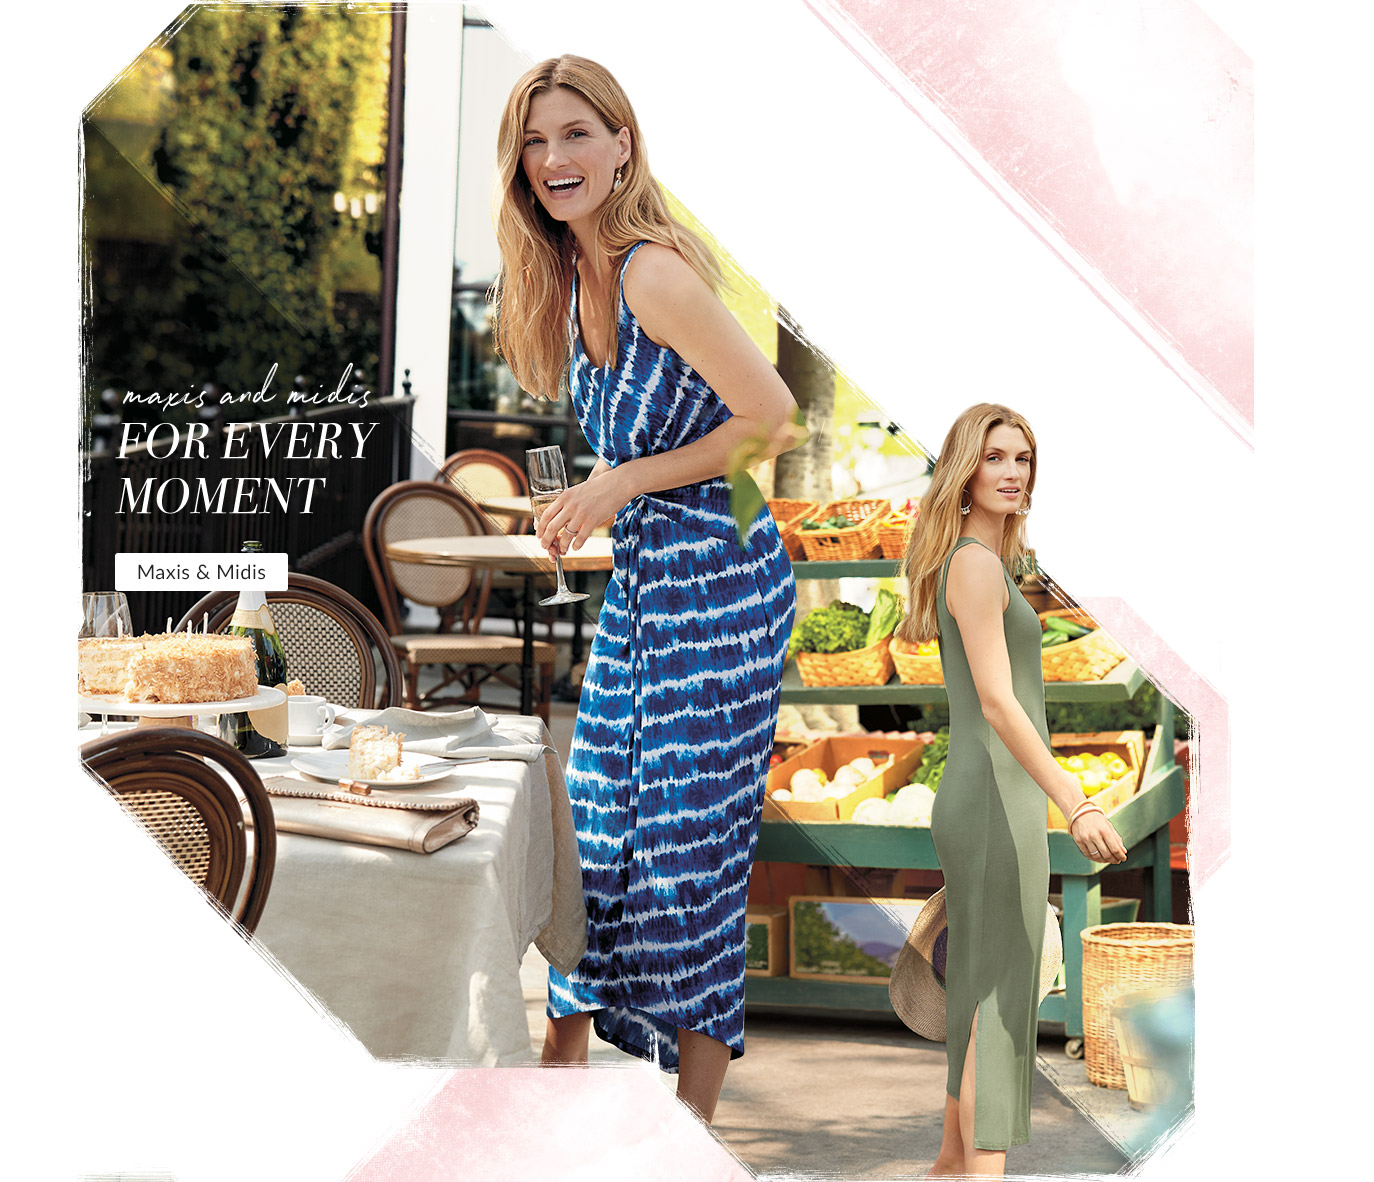 Maxis & Midis For Every Moment